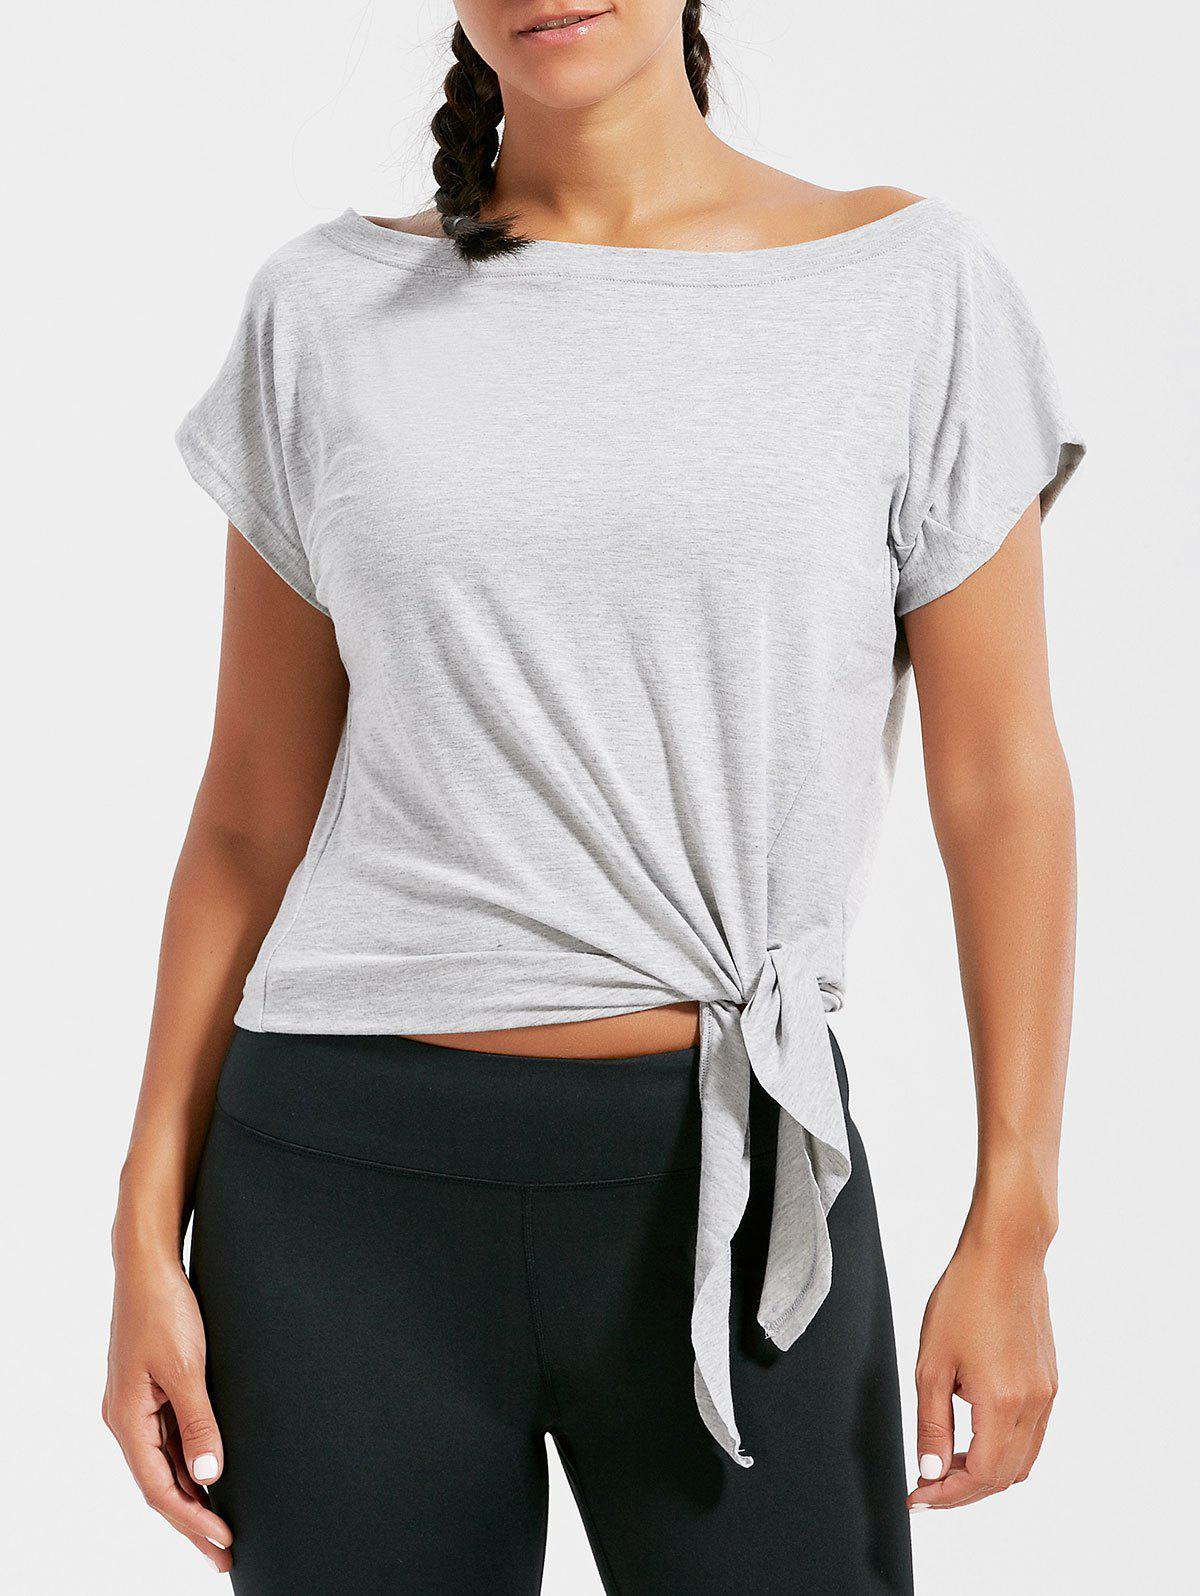 Active Cropped Front Tie T-shirt - GRAY S